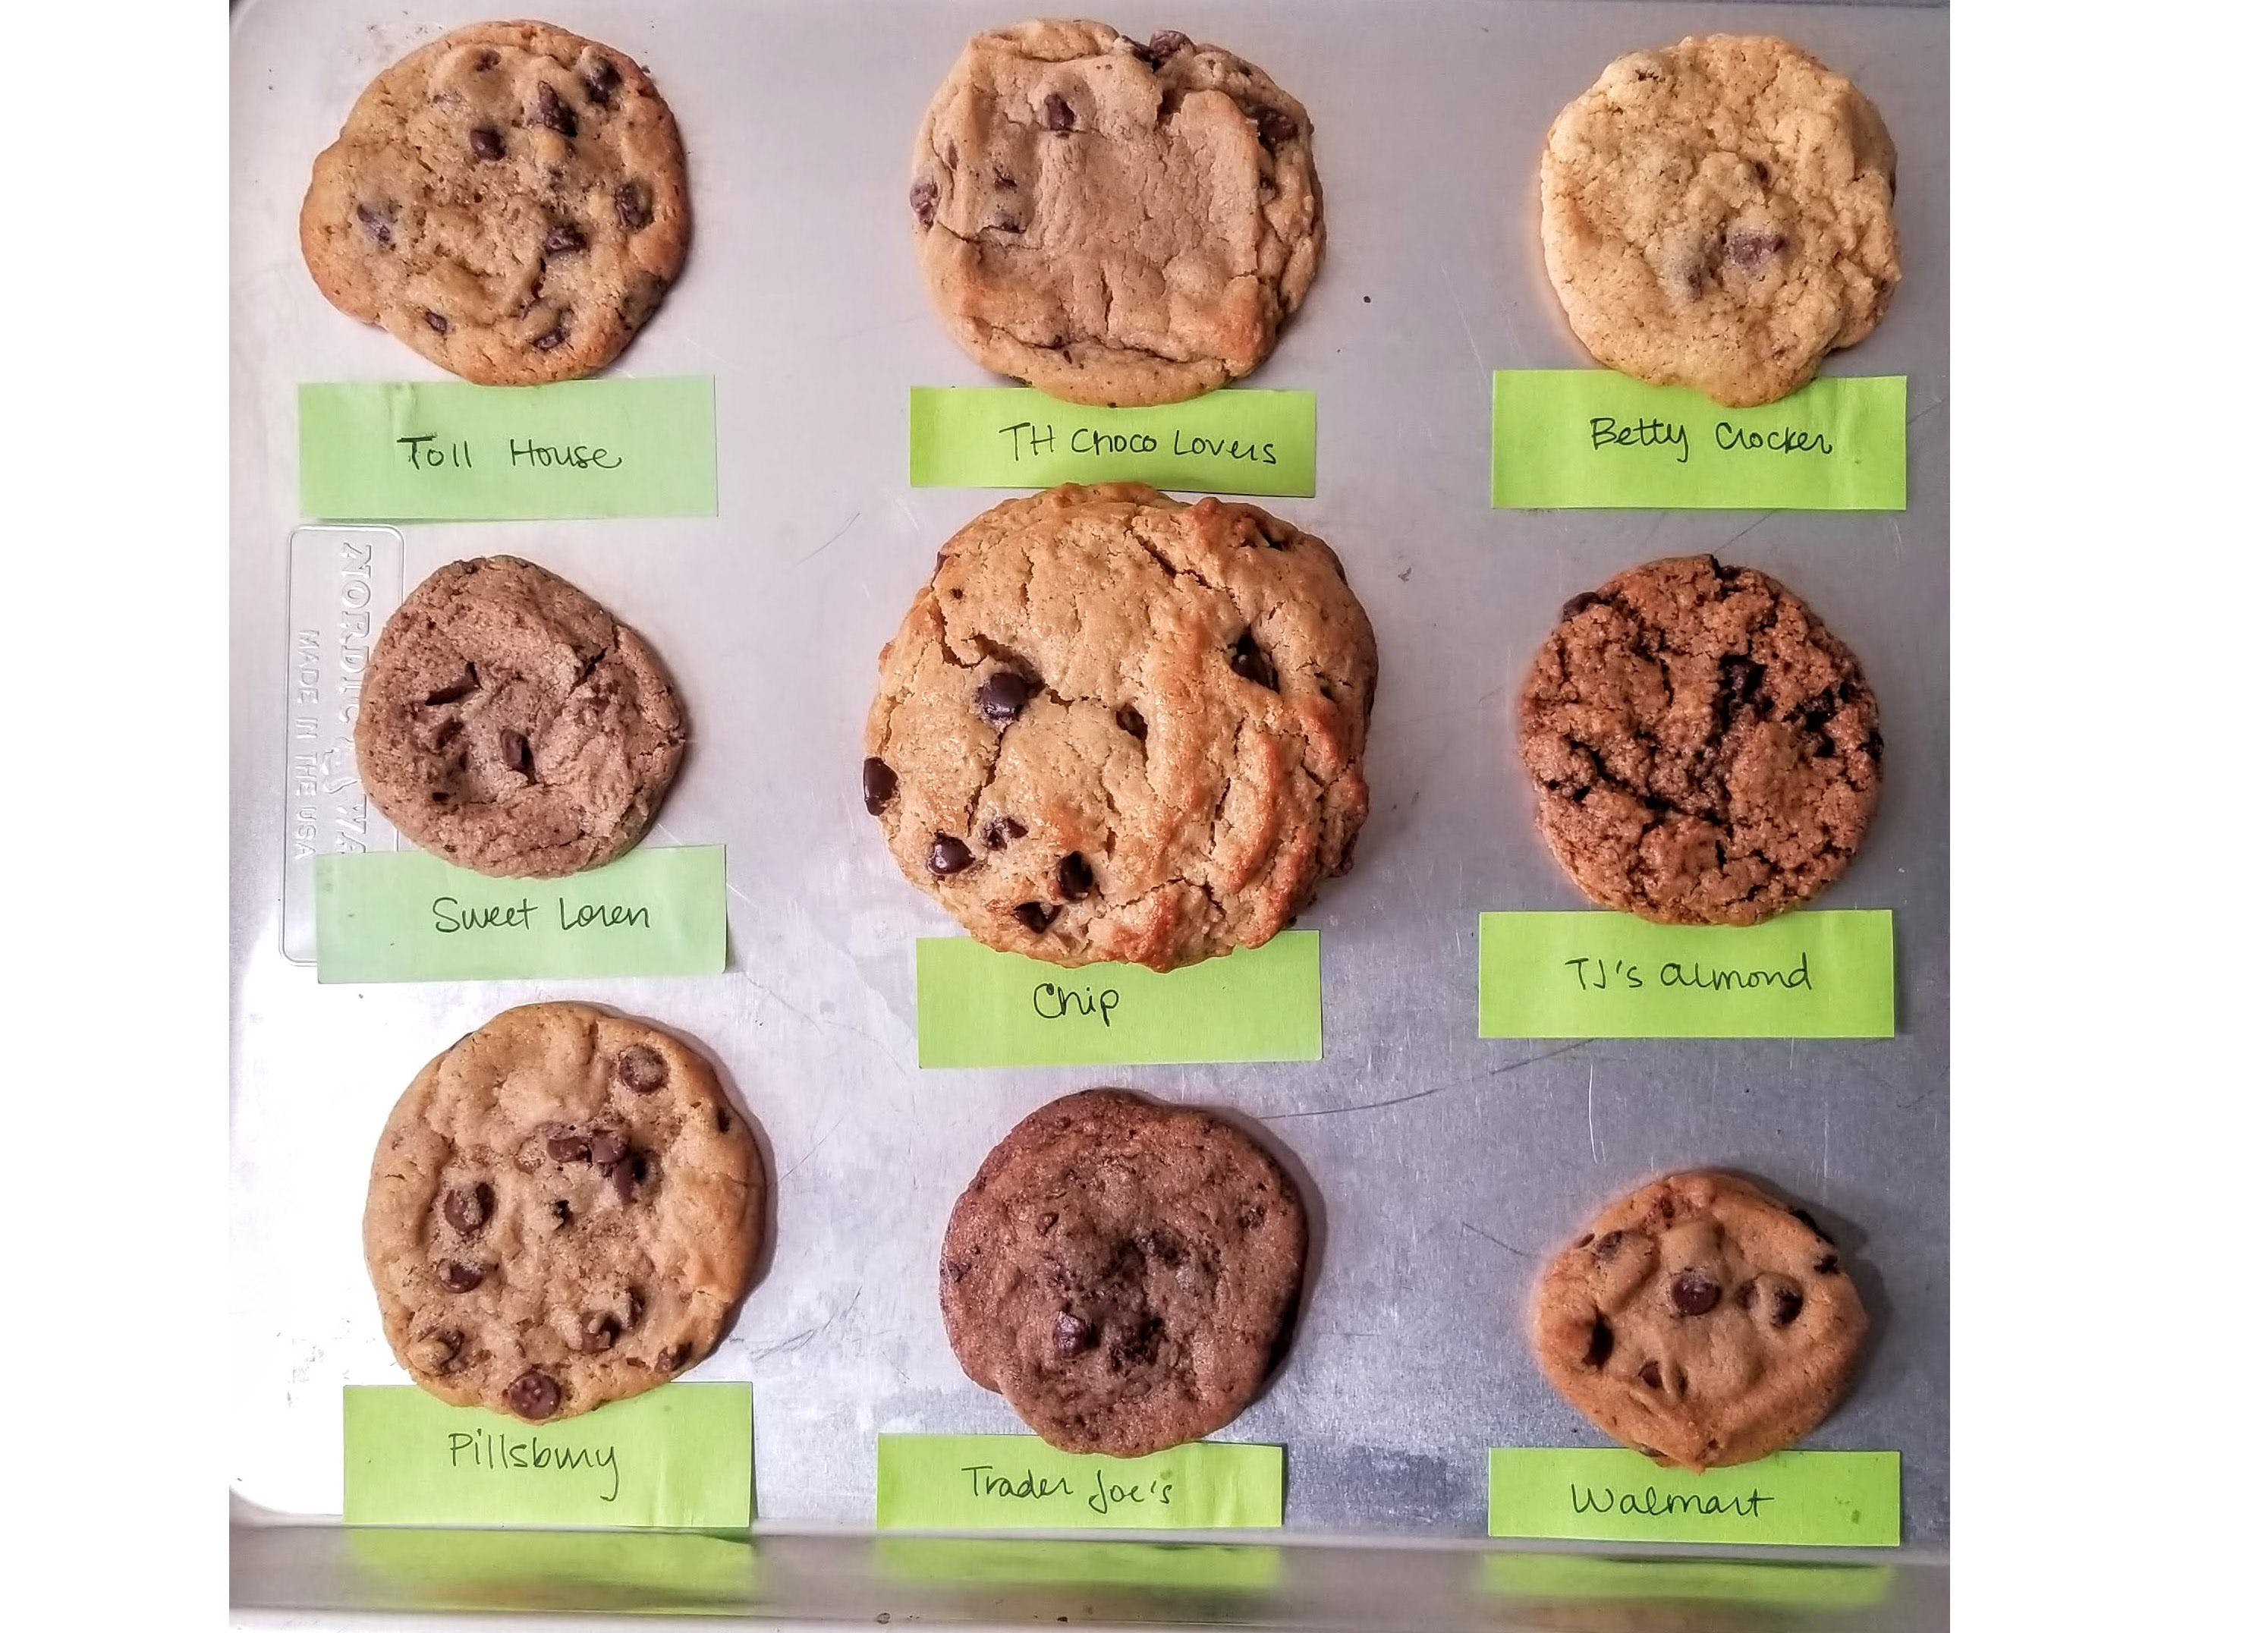 best store bought chocolate chip cookie dough testing